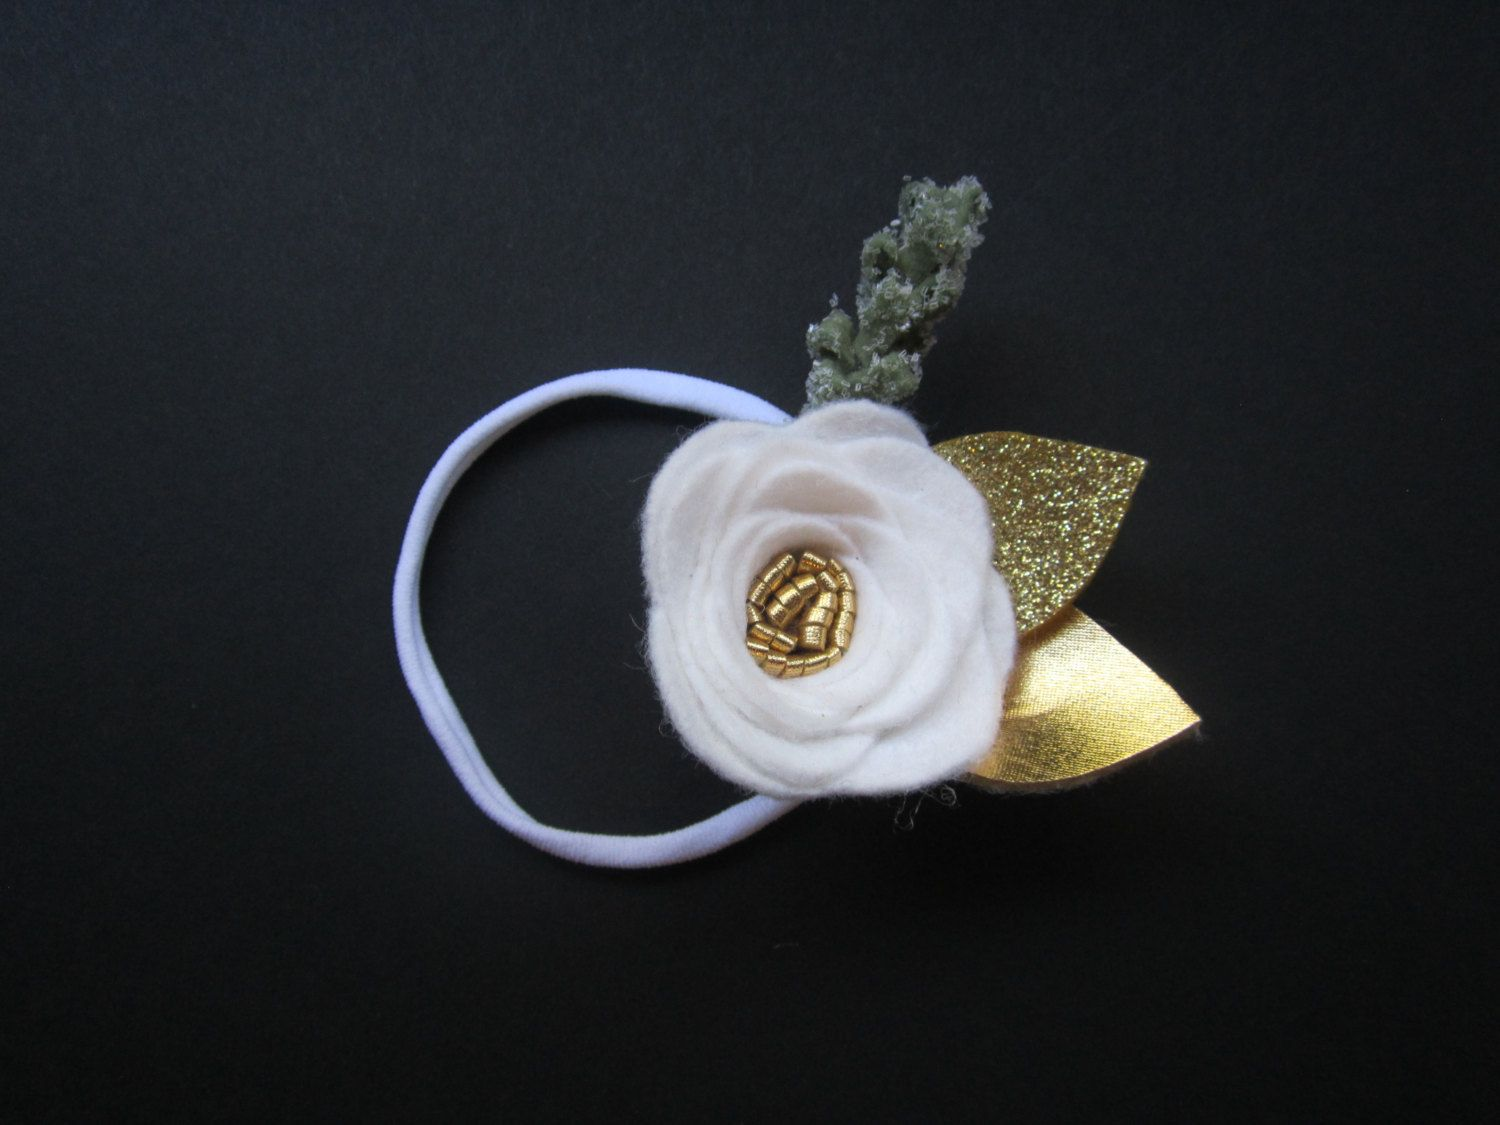 Single White Felt Flower with Gold & Glittered Leaves Headband/Clip / Christmas / Holiday / Photo Prop / Baby Girl / Toddler Girl by BobanaBoutique on Etsy https://www.etsy.com/listing/252933038/single-white-felt-flower-with-gold